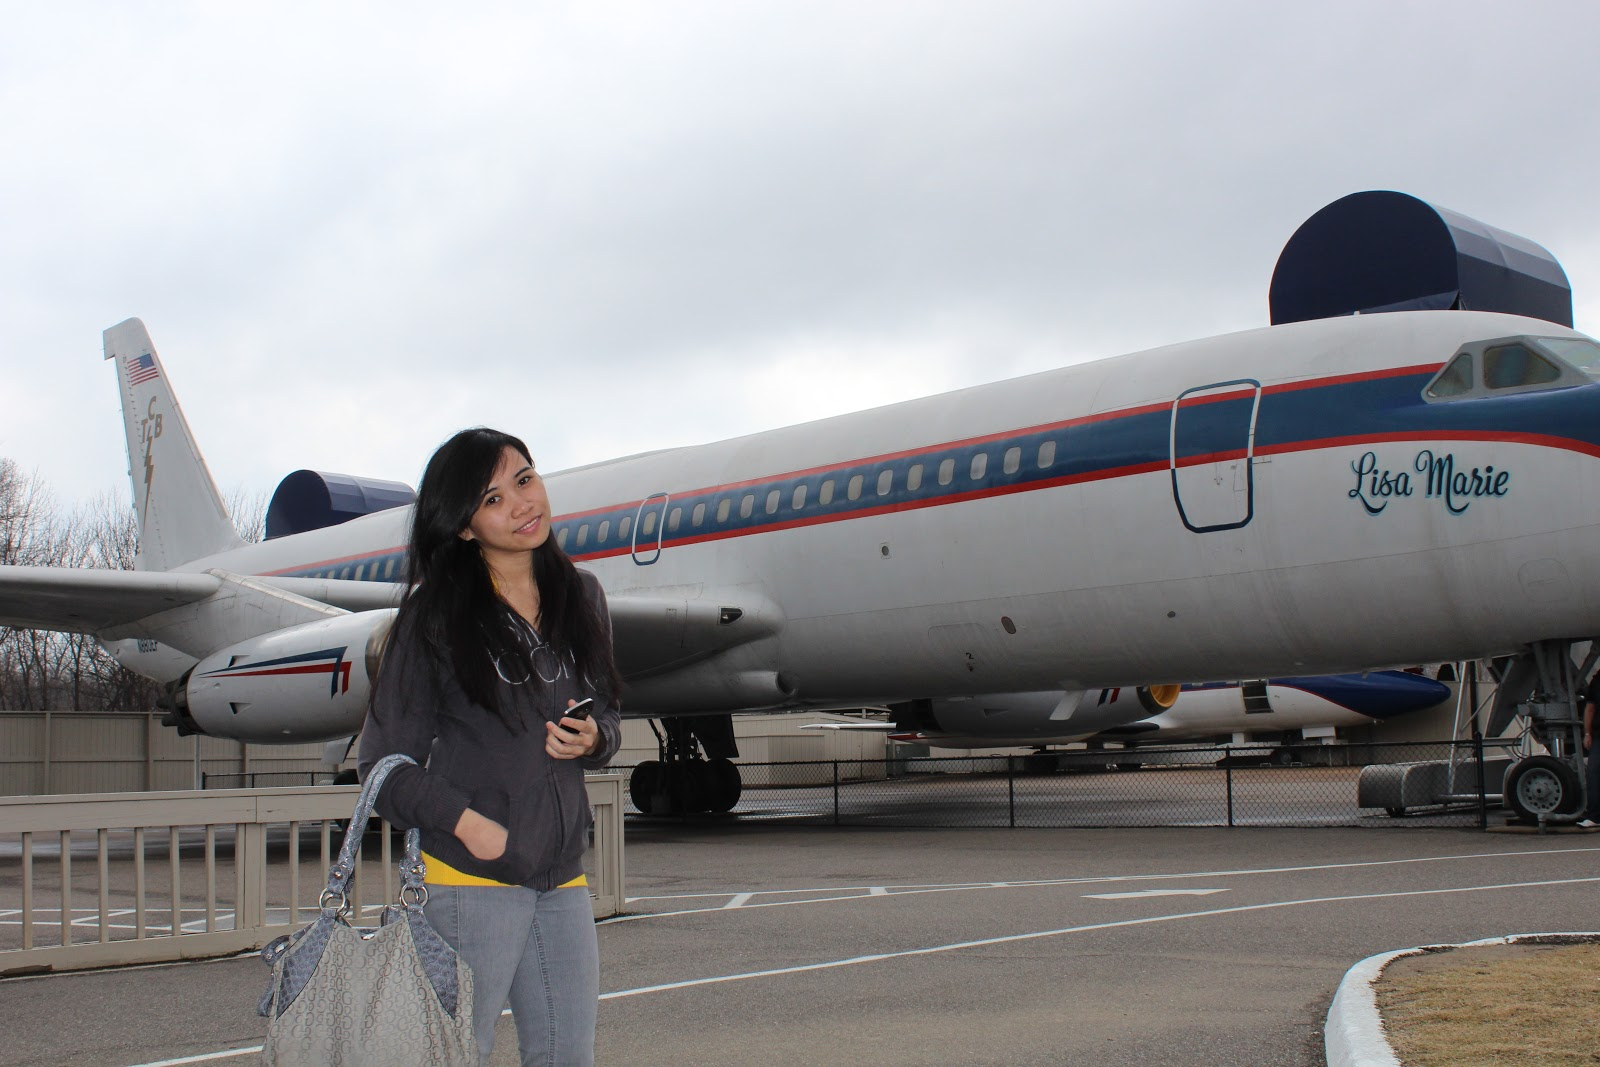 Elvis owned two private aircraft. The bigger one was named Lisa Marie ...